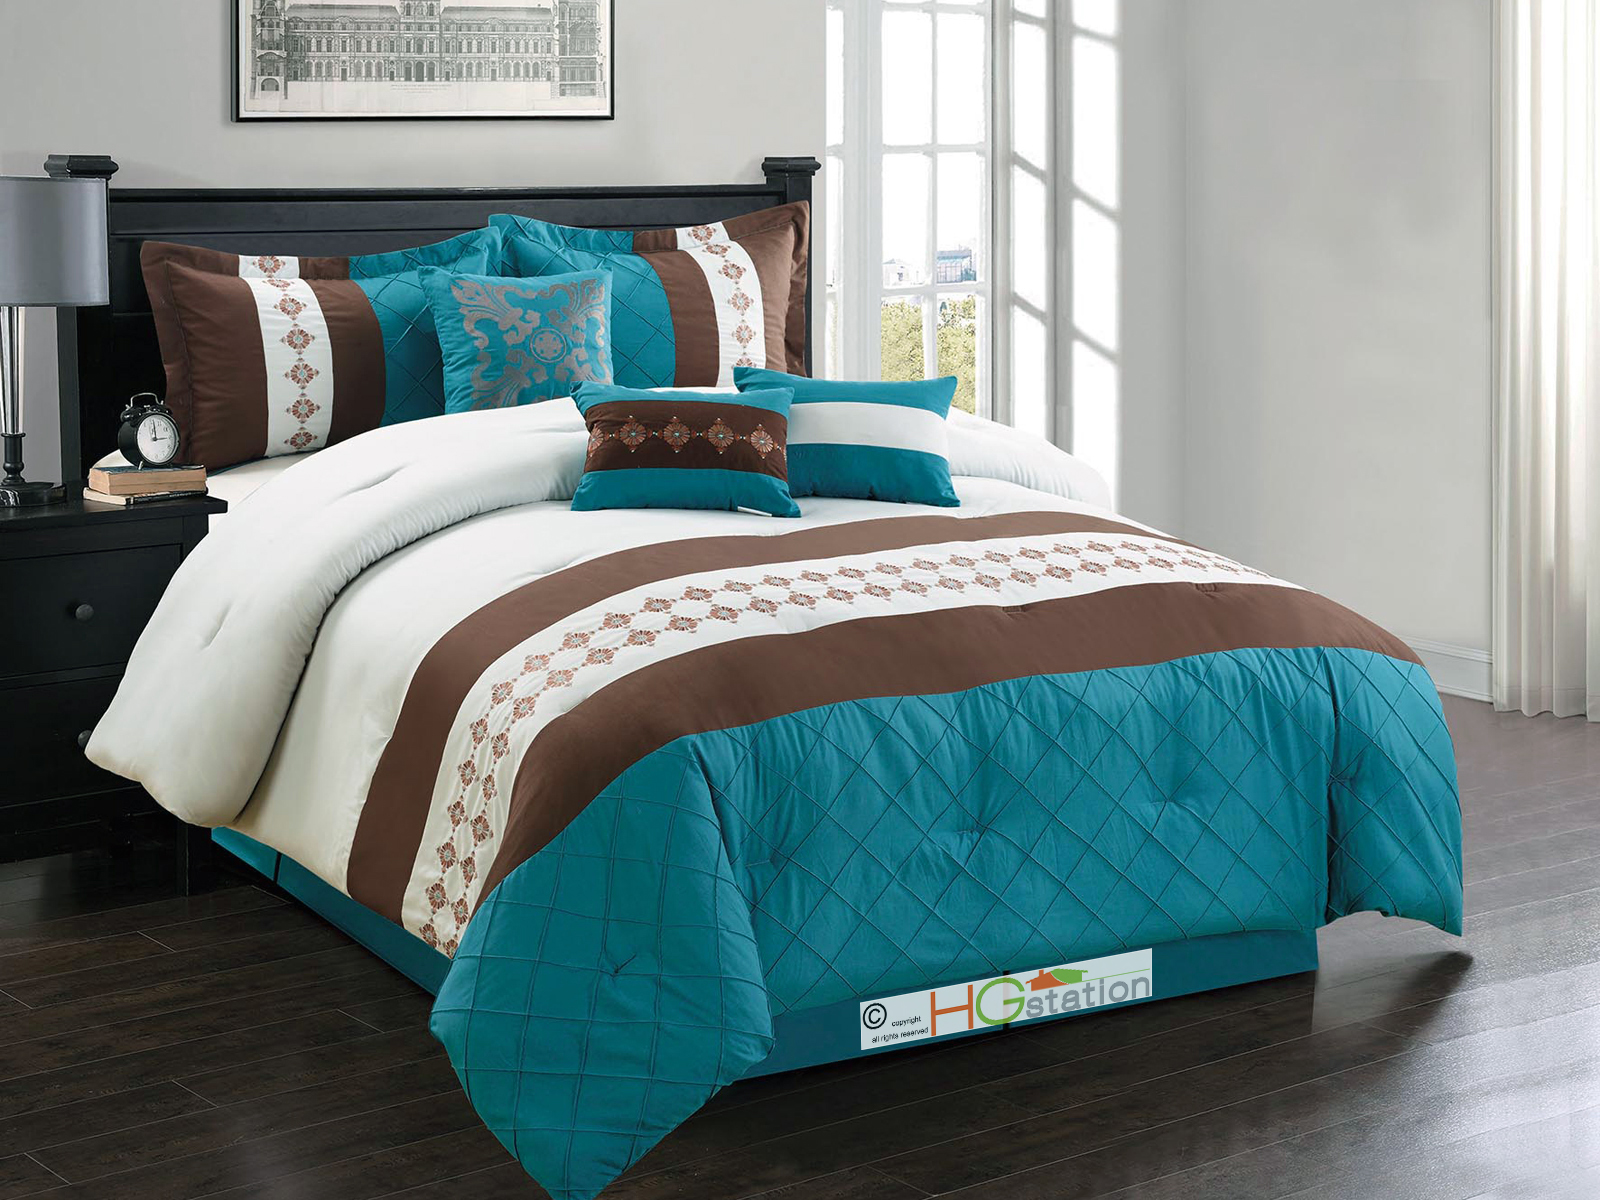 7 floral french lily embroidery comforter set teal brown. Black Bedroom Furniture Sets. Home Design Ideas